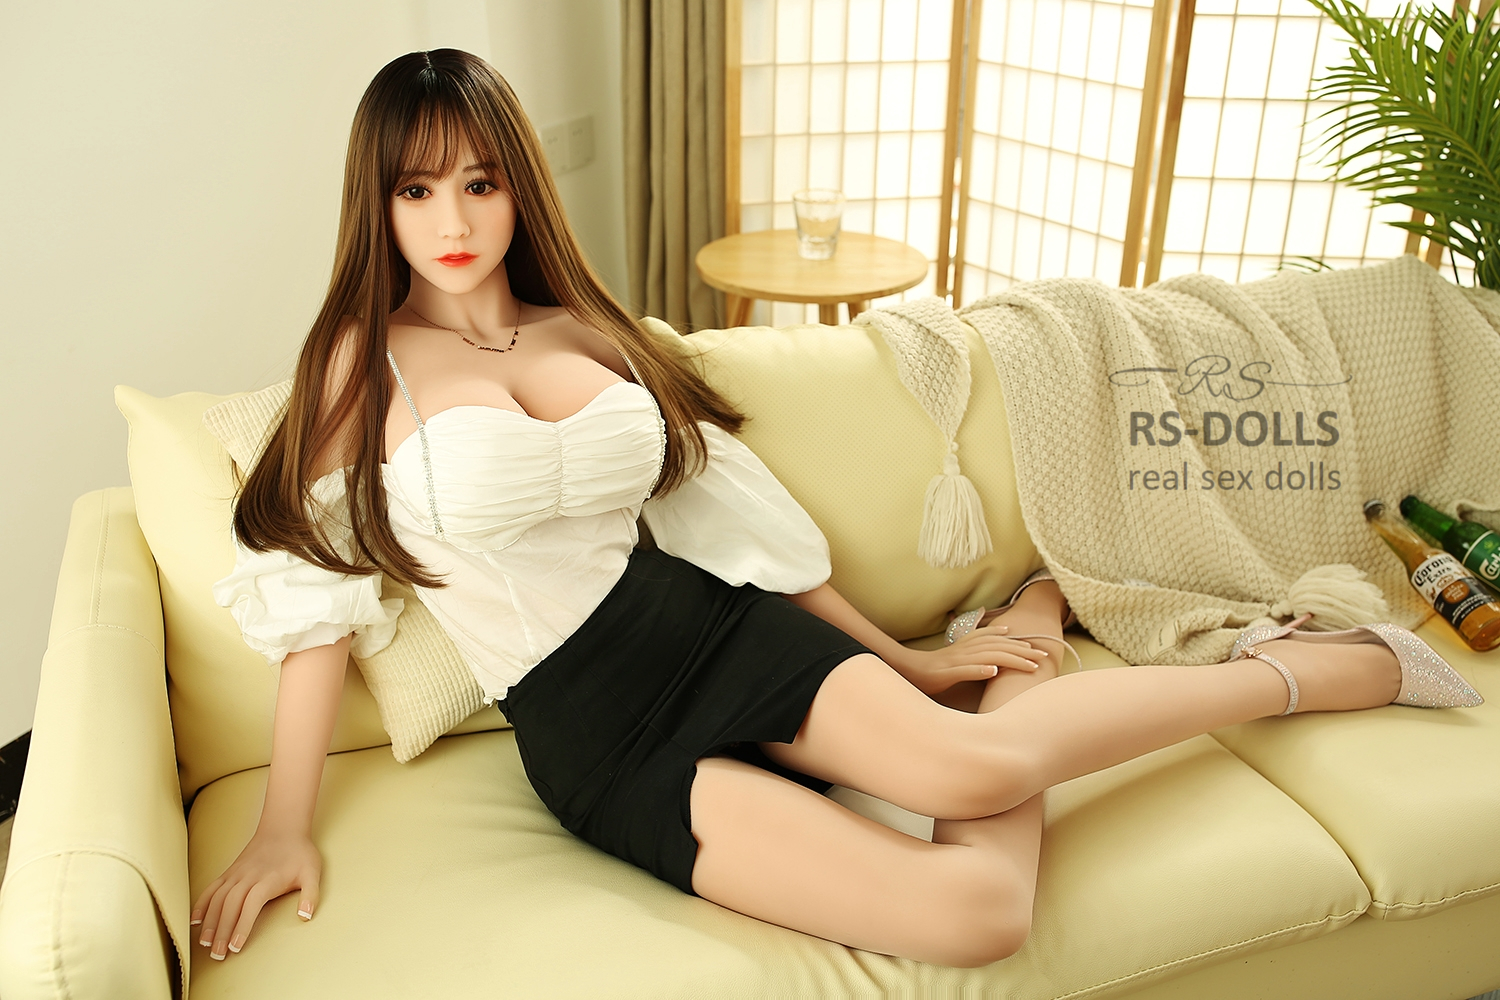 Aiko RSD PrimeLine real sex doll RS DOLLS Sexpuppen 2